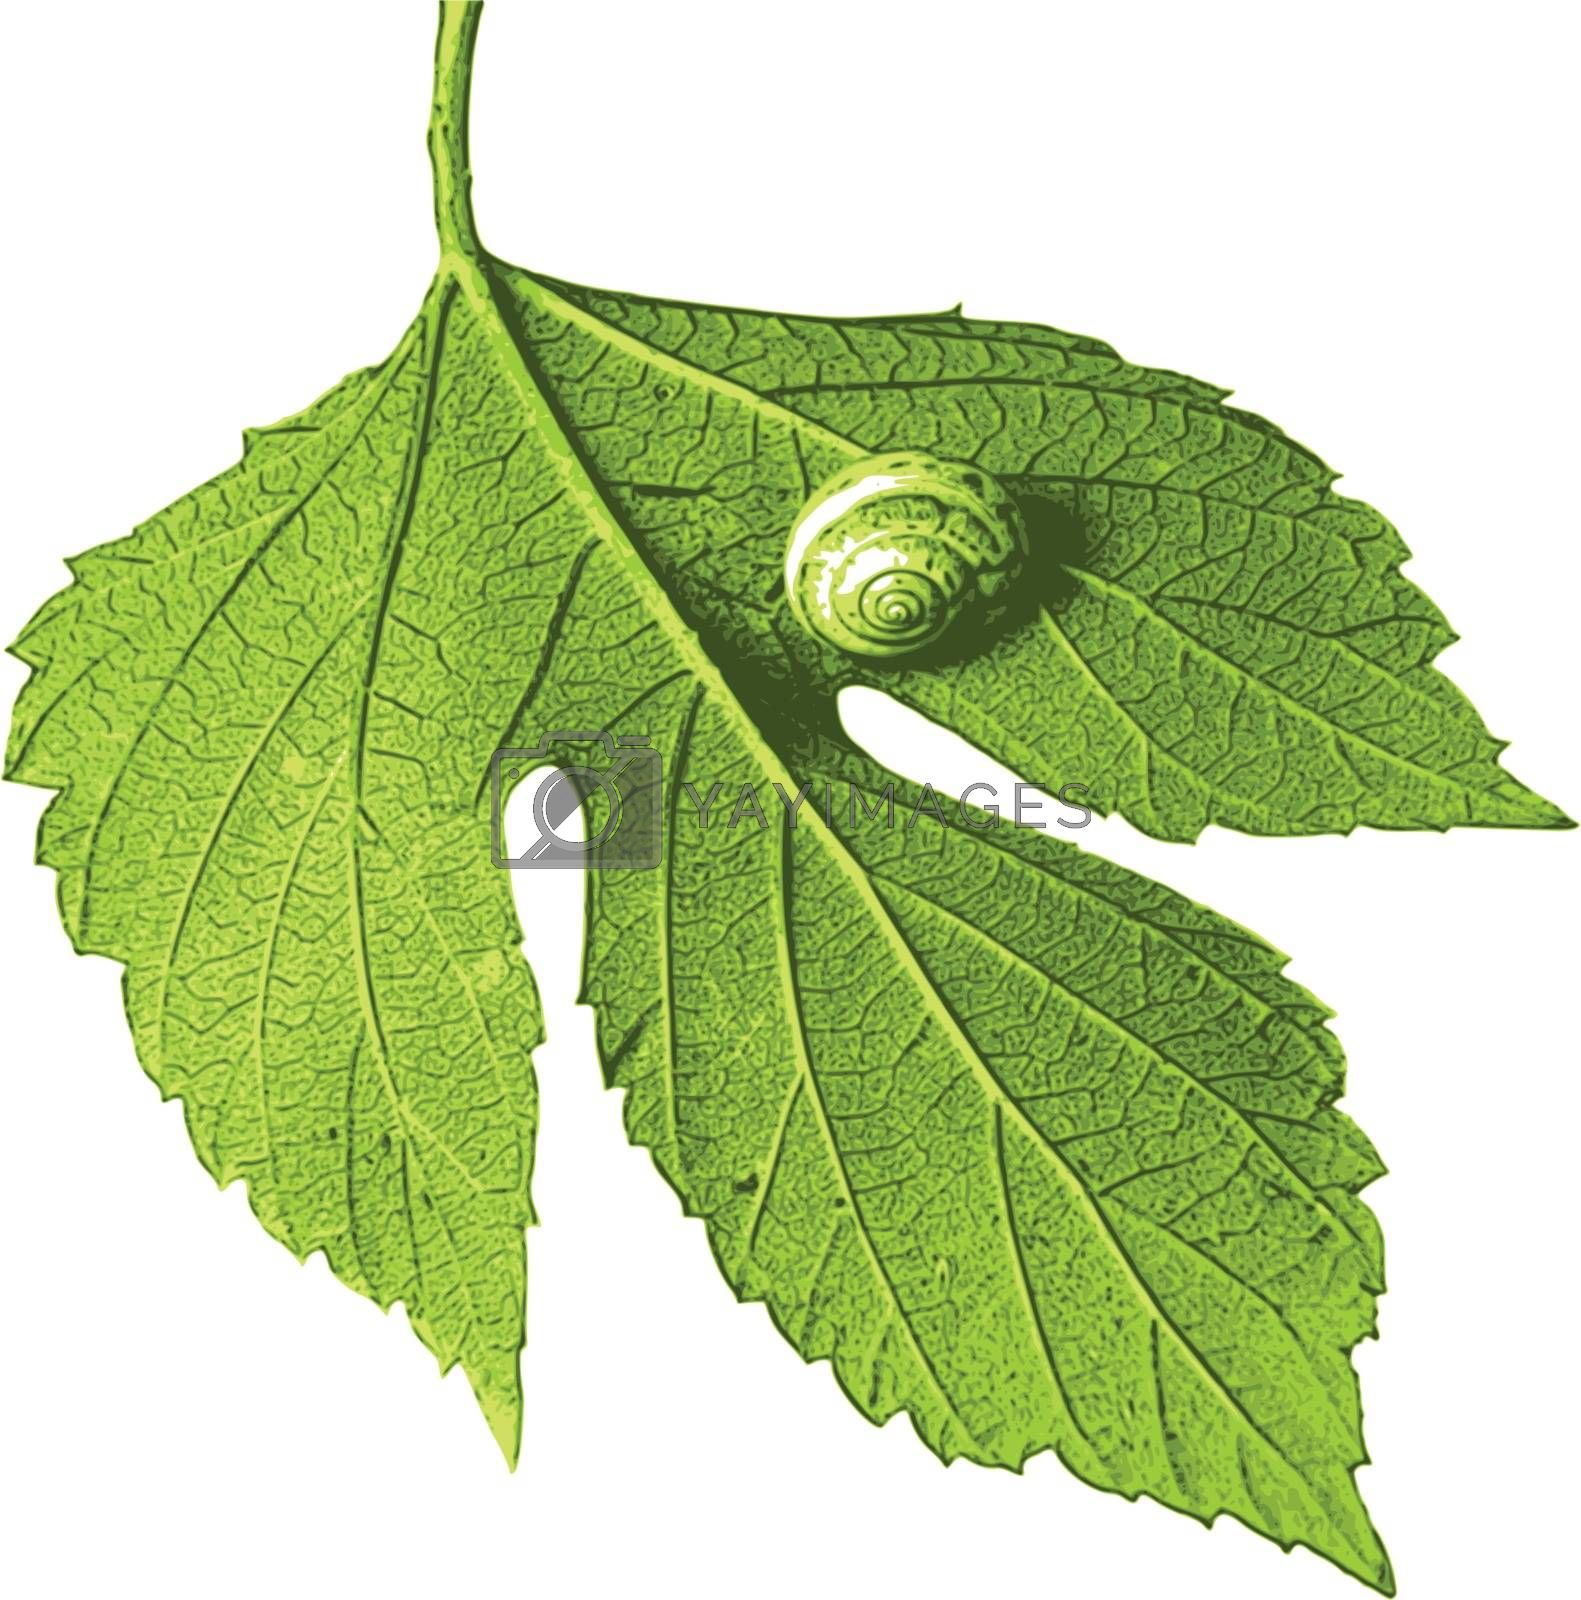 photorealistic, vector, traced illustration of leaf with snail